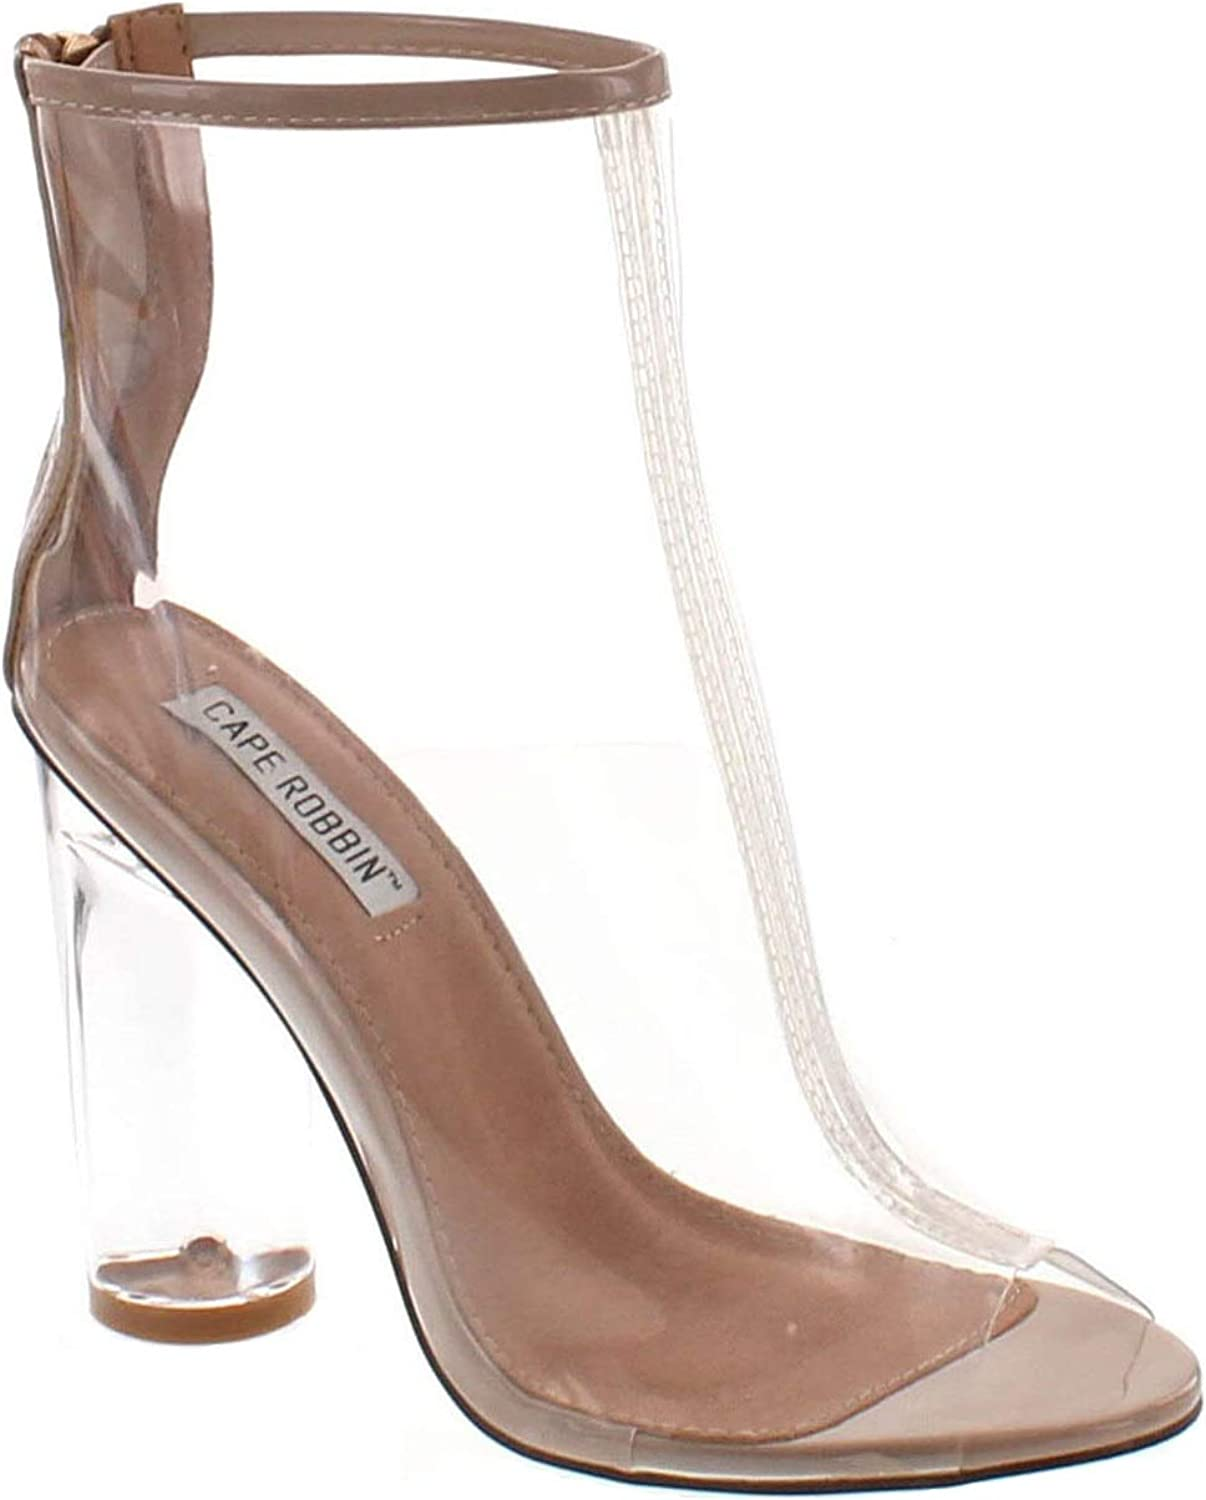 Womens Perspex Peep Toe Ankle Boots